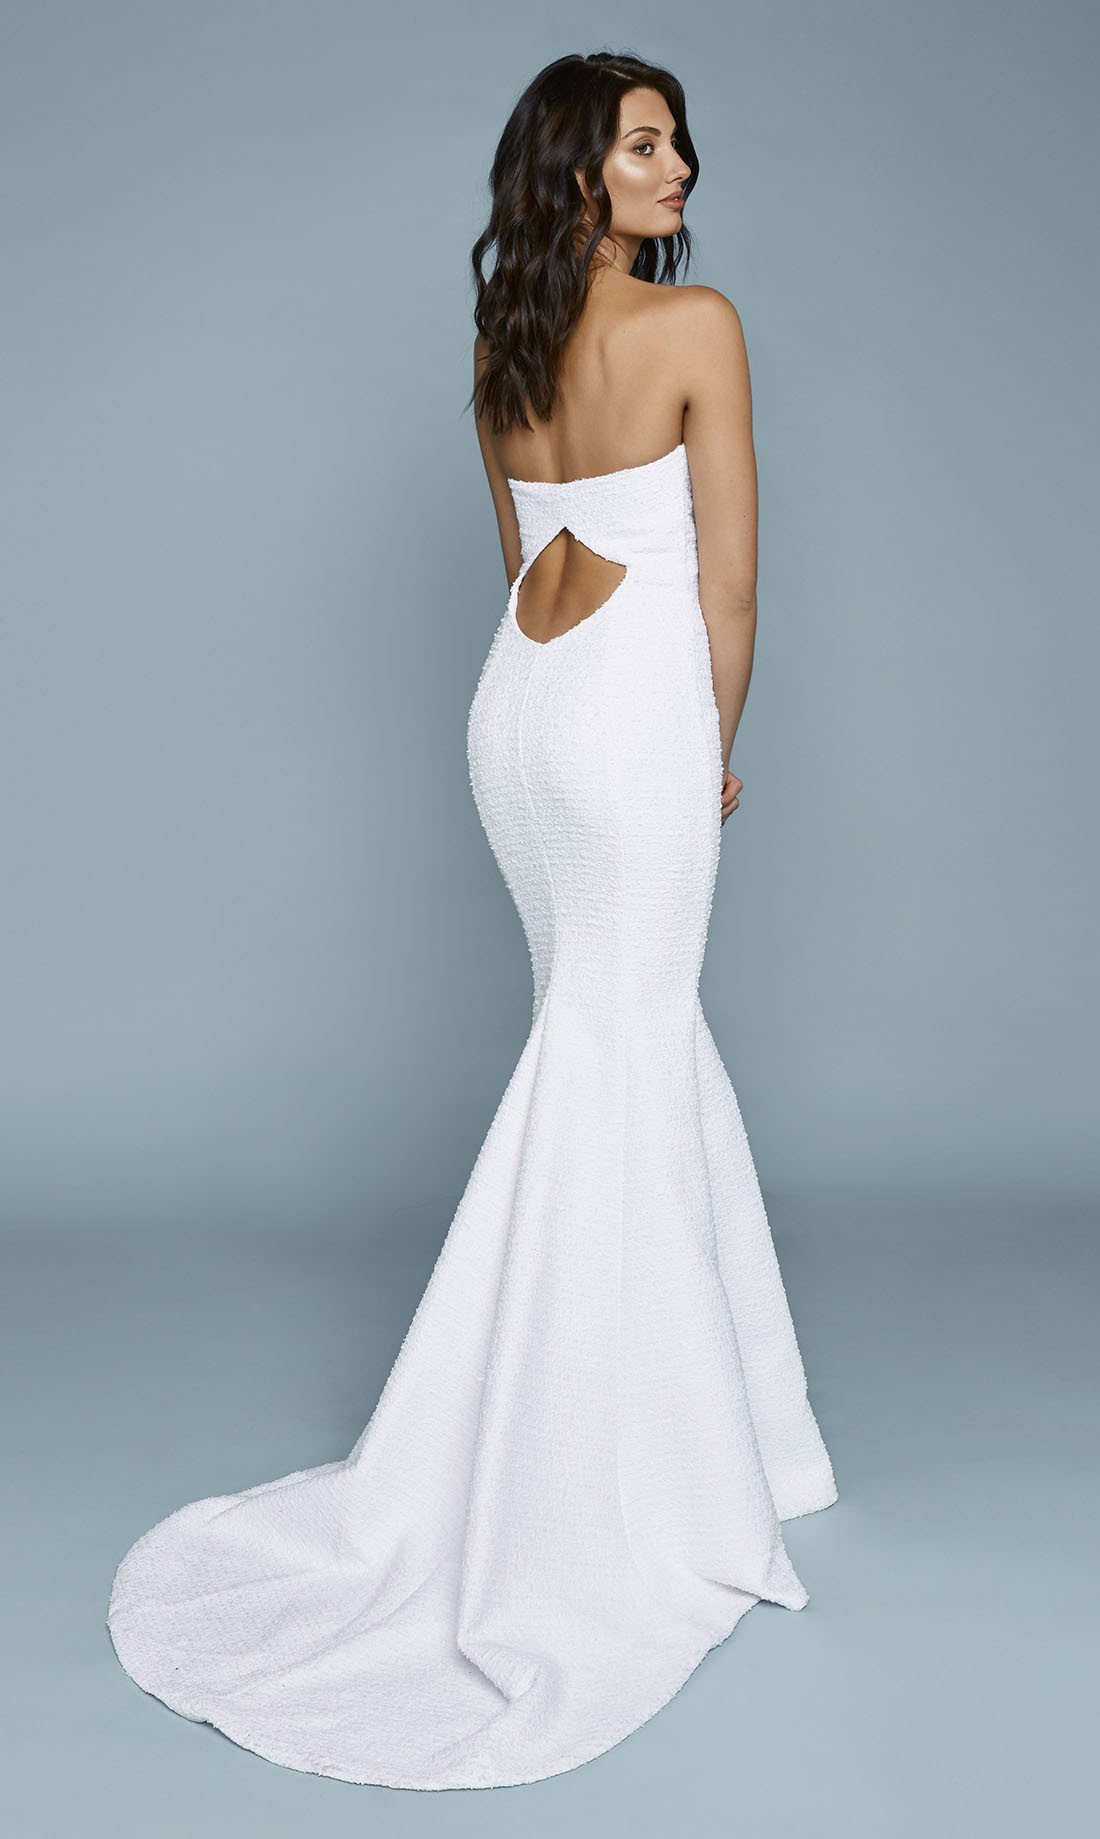 A Stylist\'s Guide To Wedding Dresses For Your Body Type - Tabella Talks